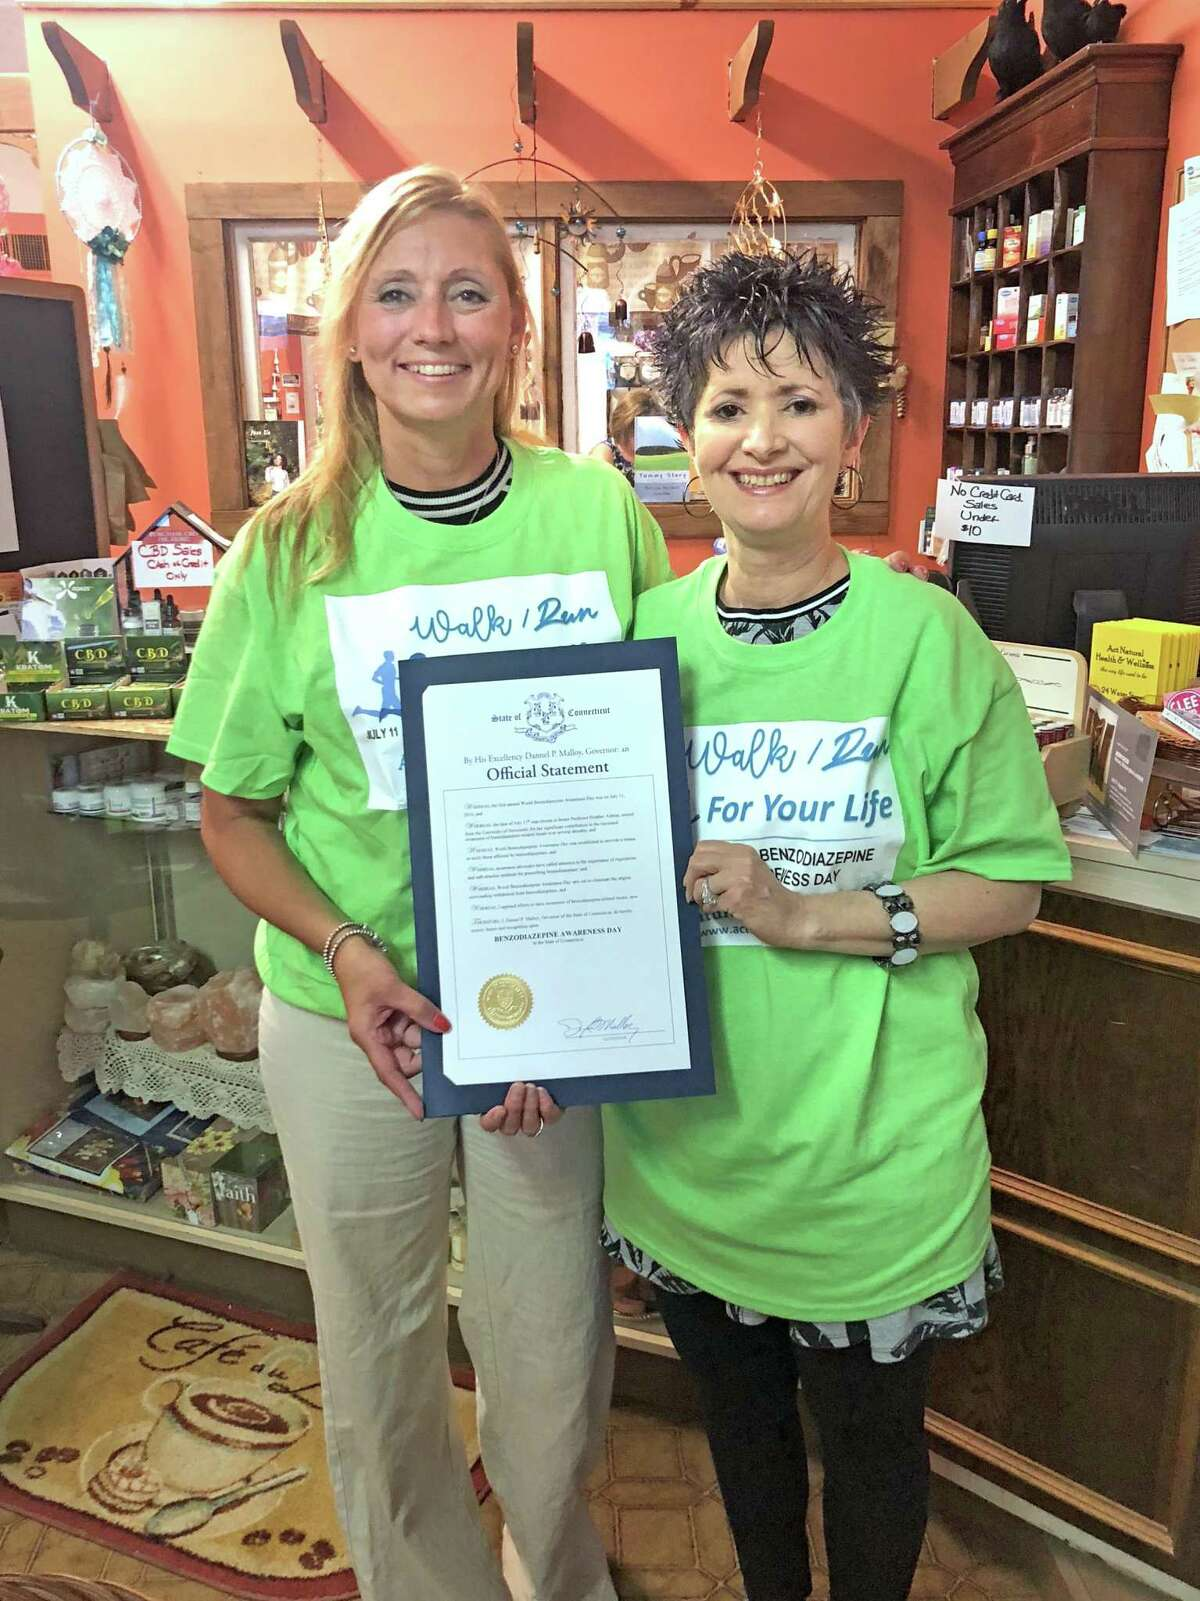 In 2018, state Rep. Michelle Cook (D-Torrington) bestowed a proclamation signed by Gov. Dannel Malloy to Pam Pinto, Connecticut representative for World Benzodiazepine Awareness Day, a victim-organized campaign seeking to raise awareness about the dangers of prescribed benzodiazepines, following a Walk/Run for Your Life event. Pinto, owner of Act Natural Health and Wellness, 24 Water St.,Torrington, is holding the walk again on July 11.